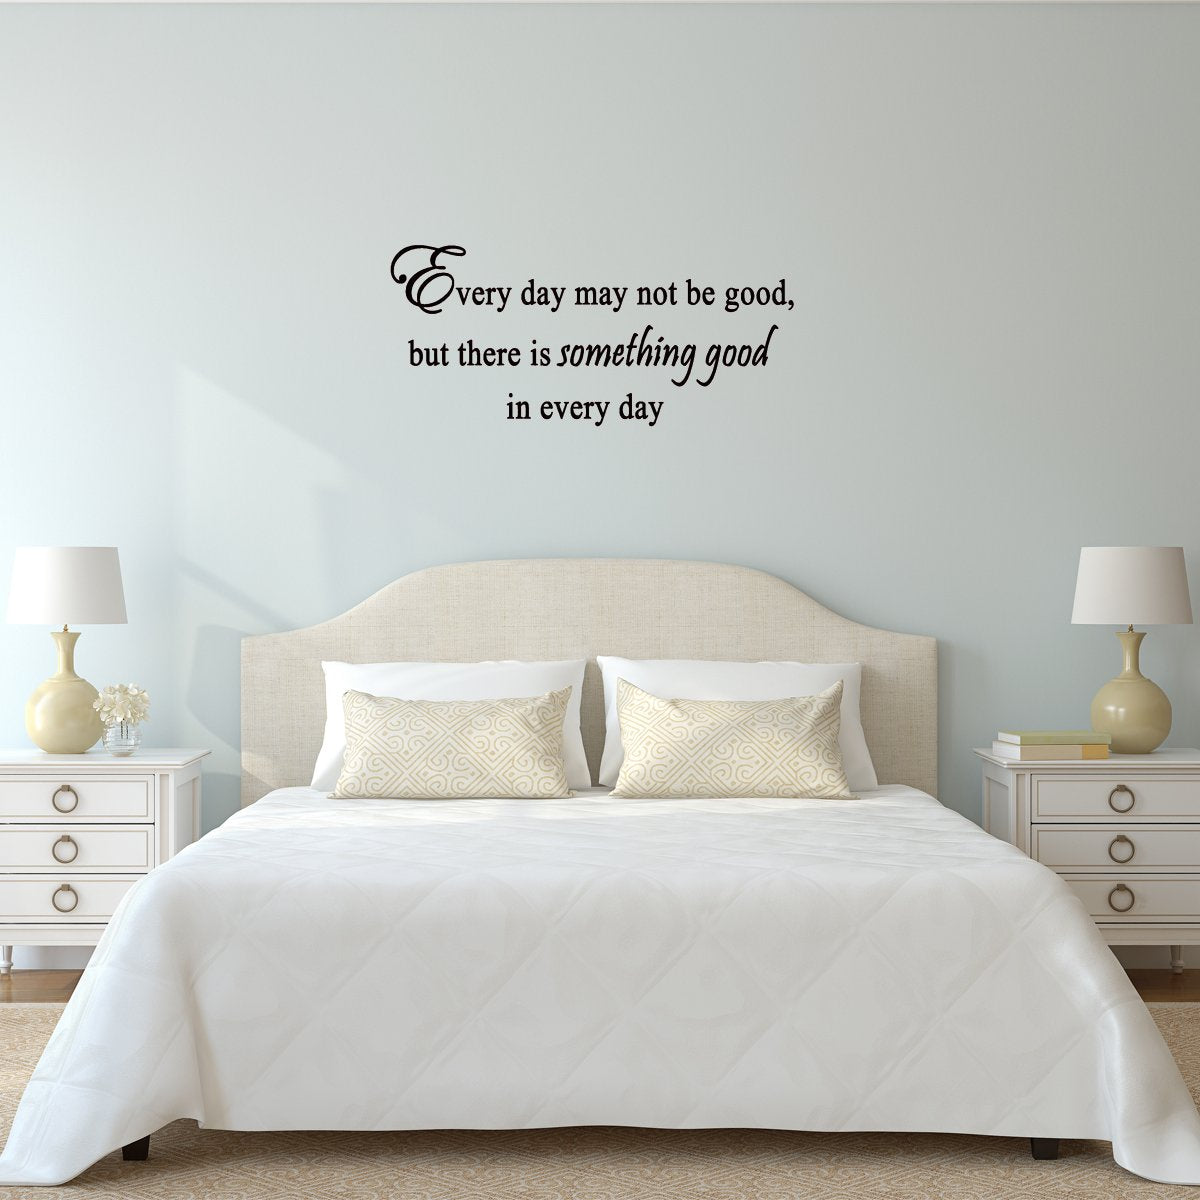 VWAQ Everyday May Not Be Good Vinyl Wall Decal   VWAQ Vinyl Wall Art Quotes  And